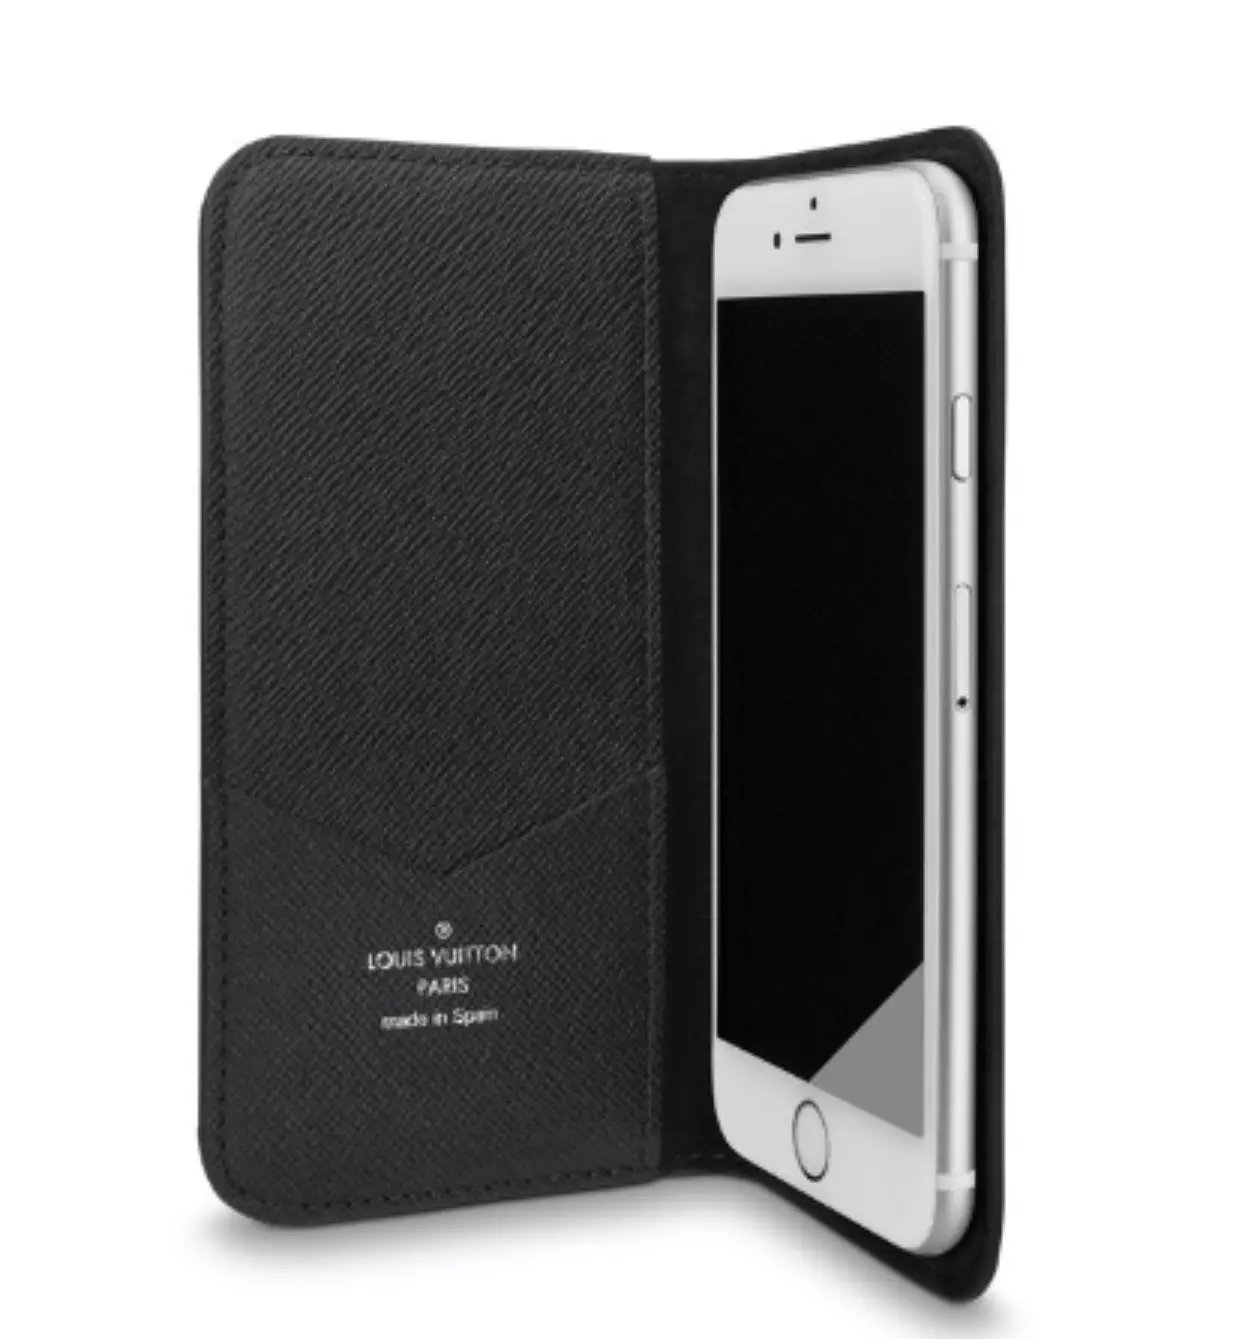 iphone handyhülle mit foto iphone klapphülle Louis Vuitton iphone6 plus hülle iphone 6 Plus handytasche weiße iphone hülle tasche iphone iphone ca6 foto gehäu6 iphone 6 Plus i pohne 6